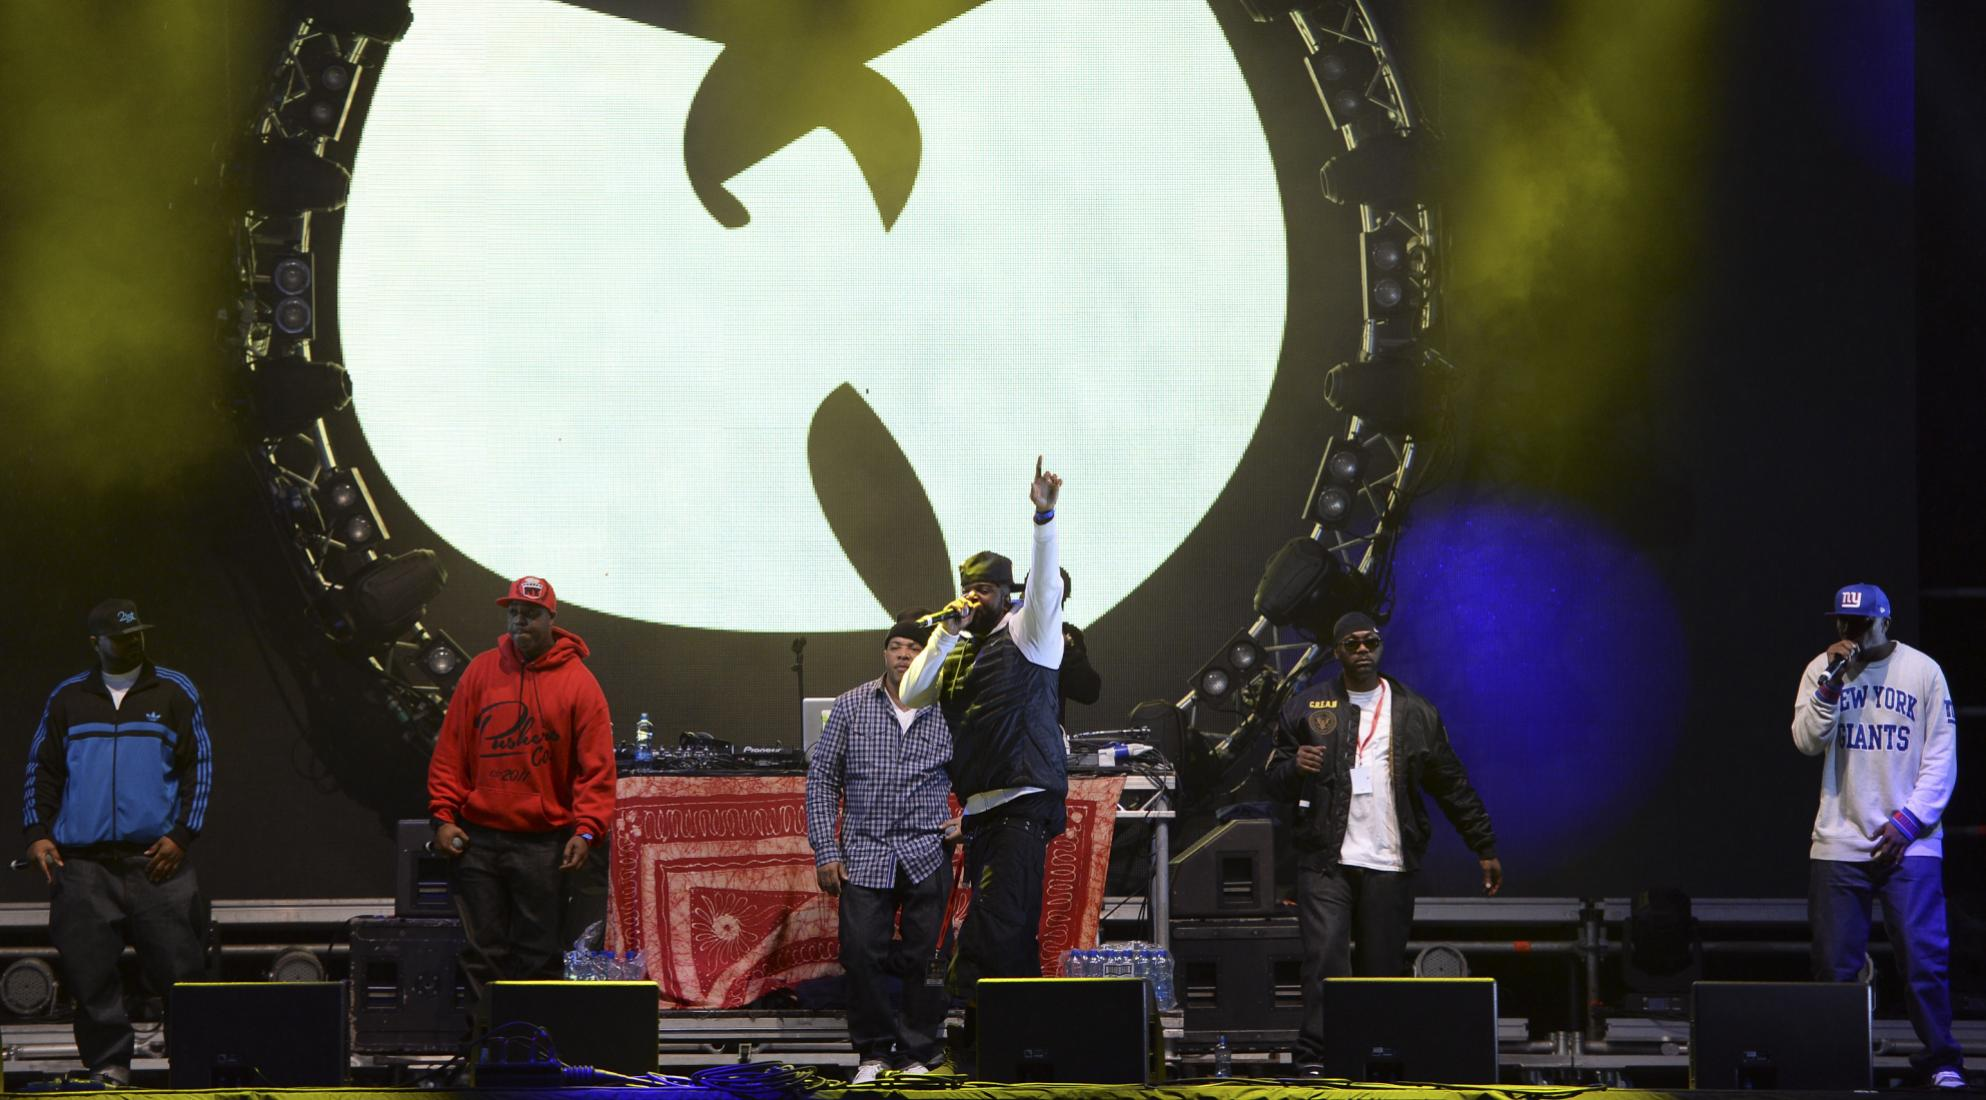 """Wu-Tang Clan Announced His Returning To The """"Mother Church Of Country Music"""" For Concert In May"""